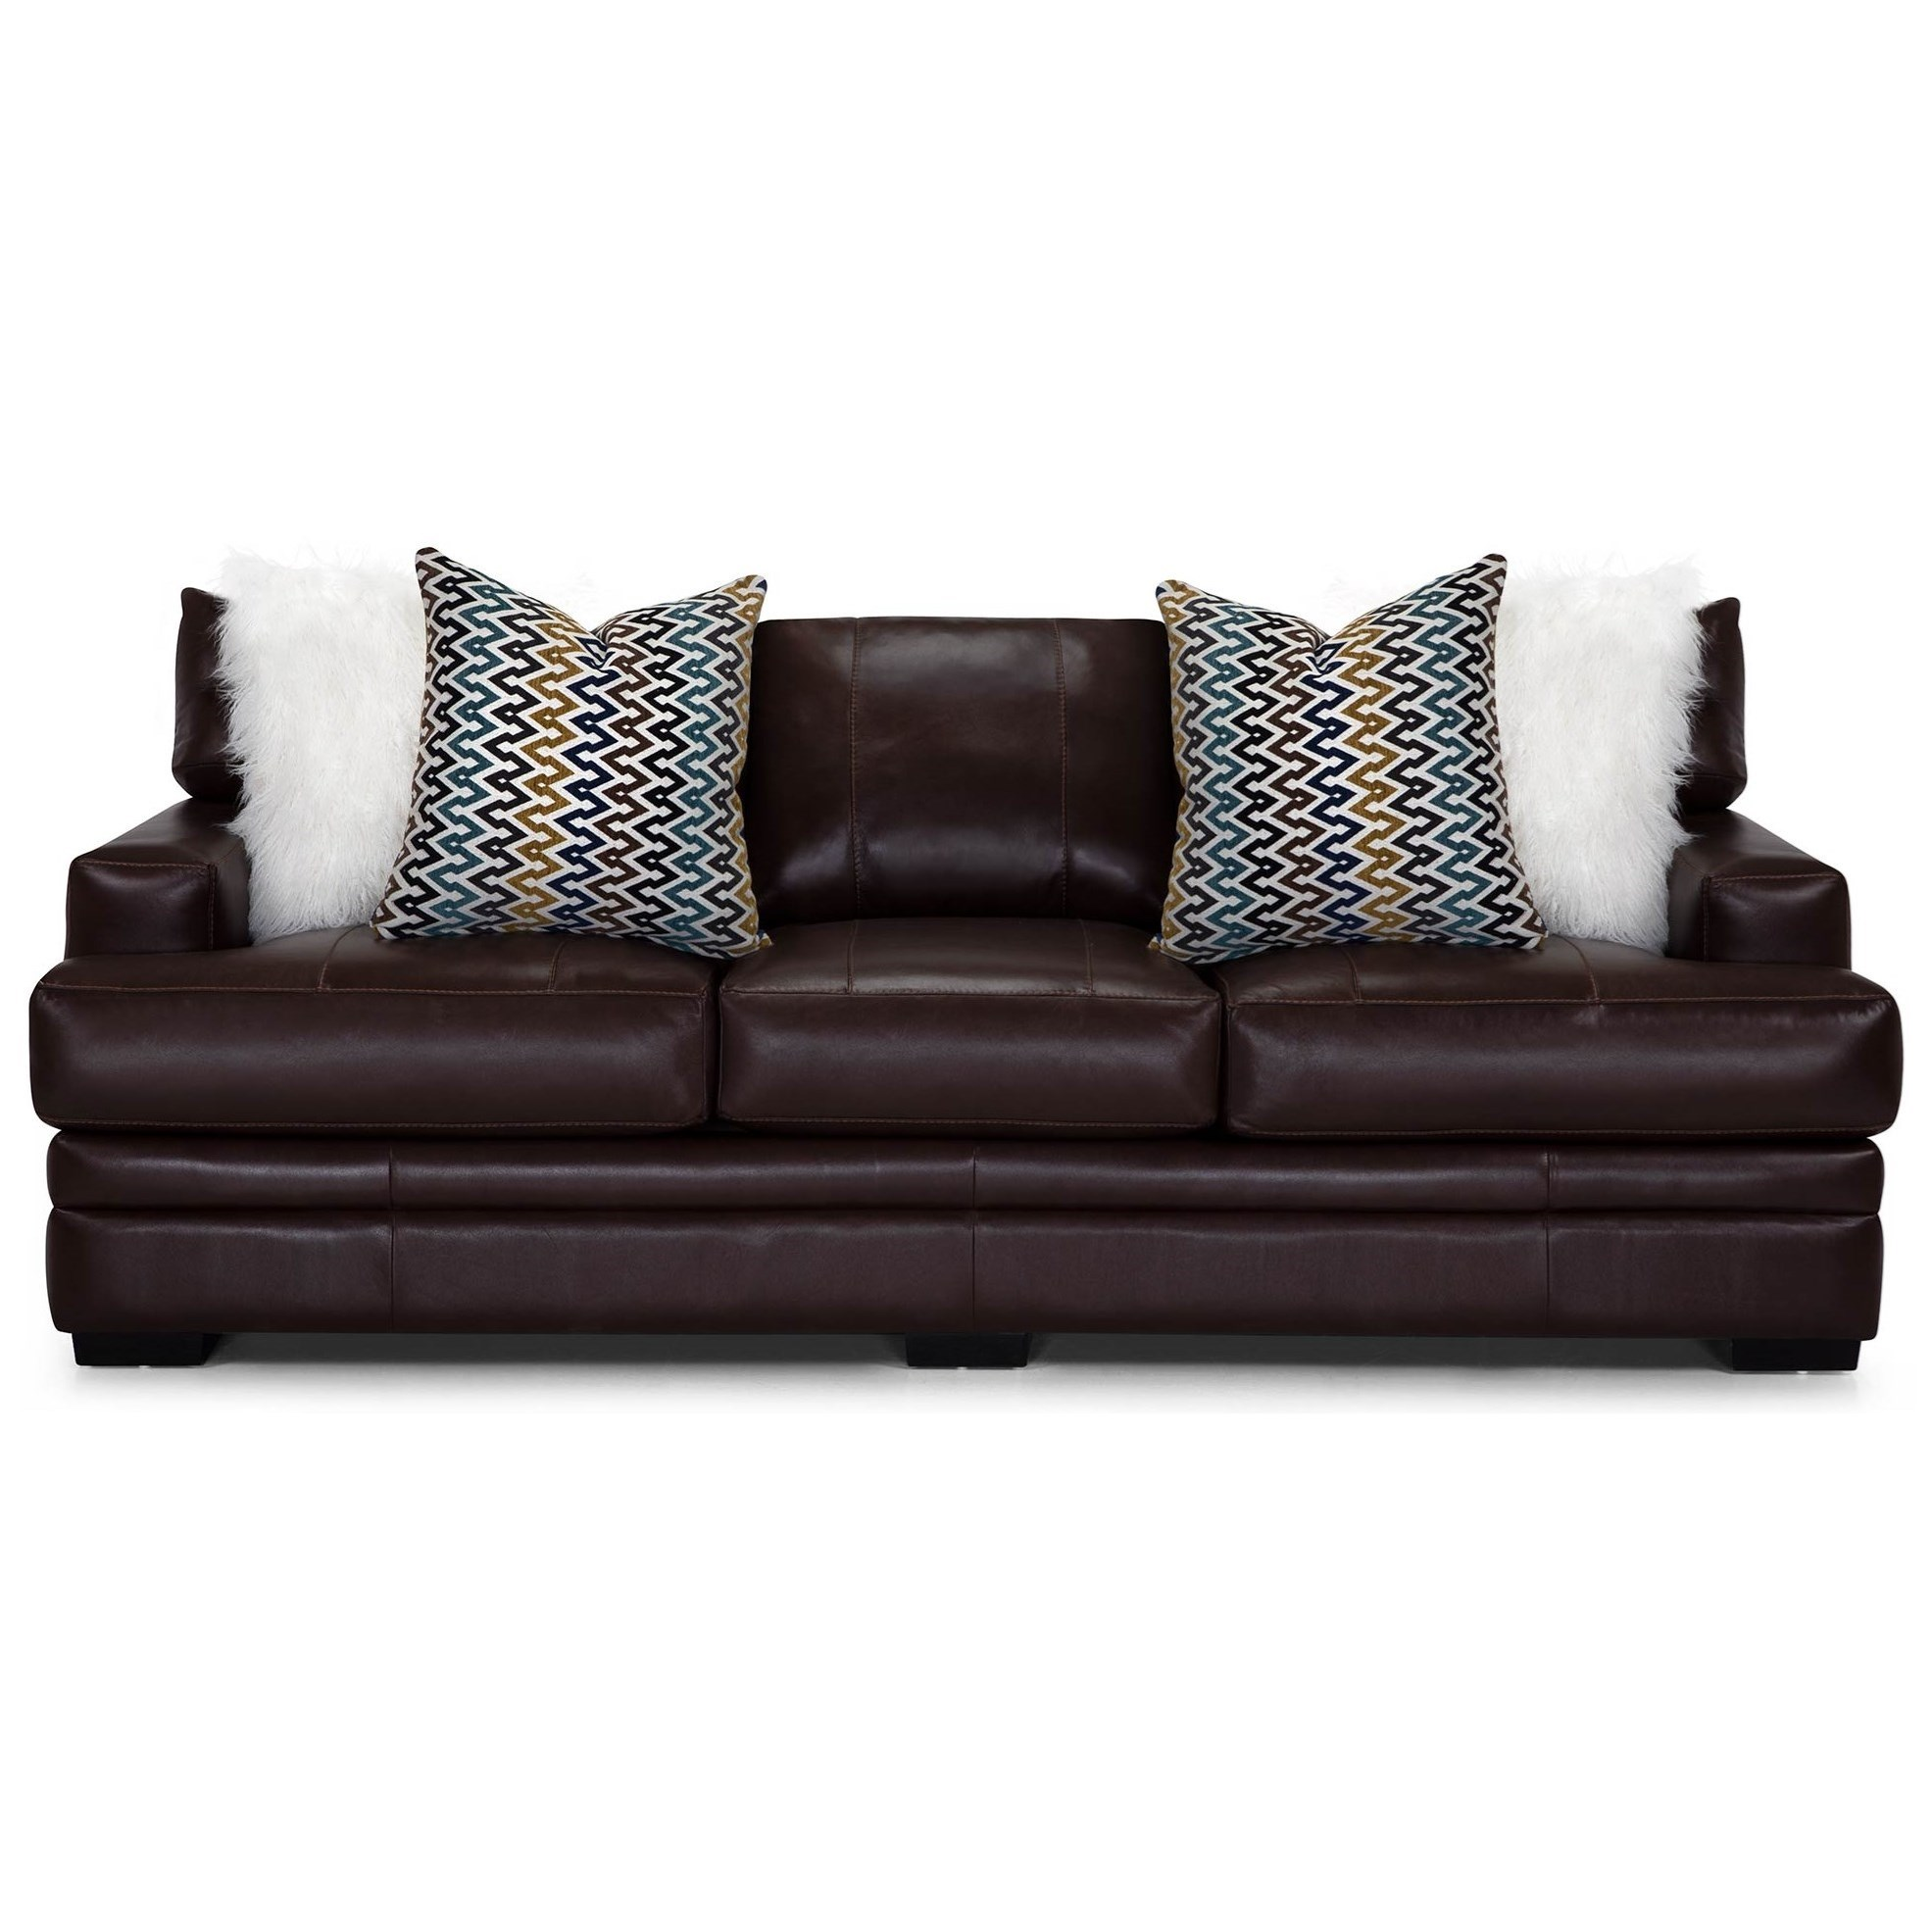 973 Sofa by Franklin at Wilcox Furniture